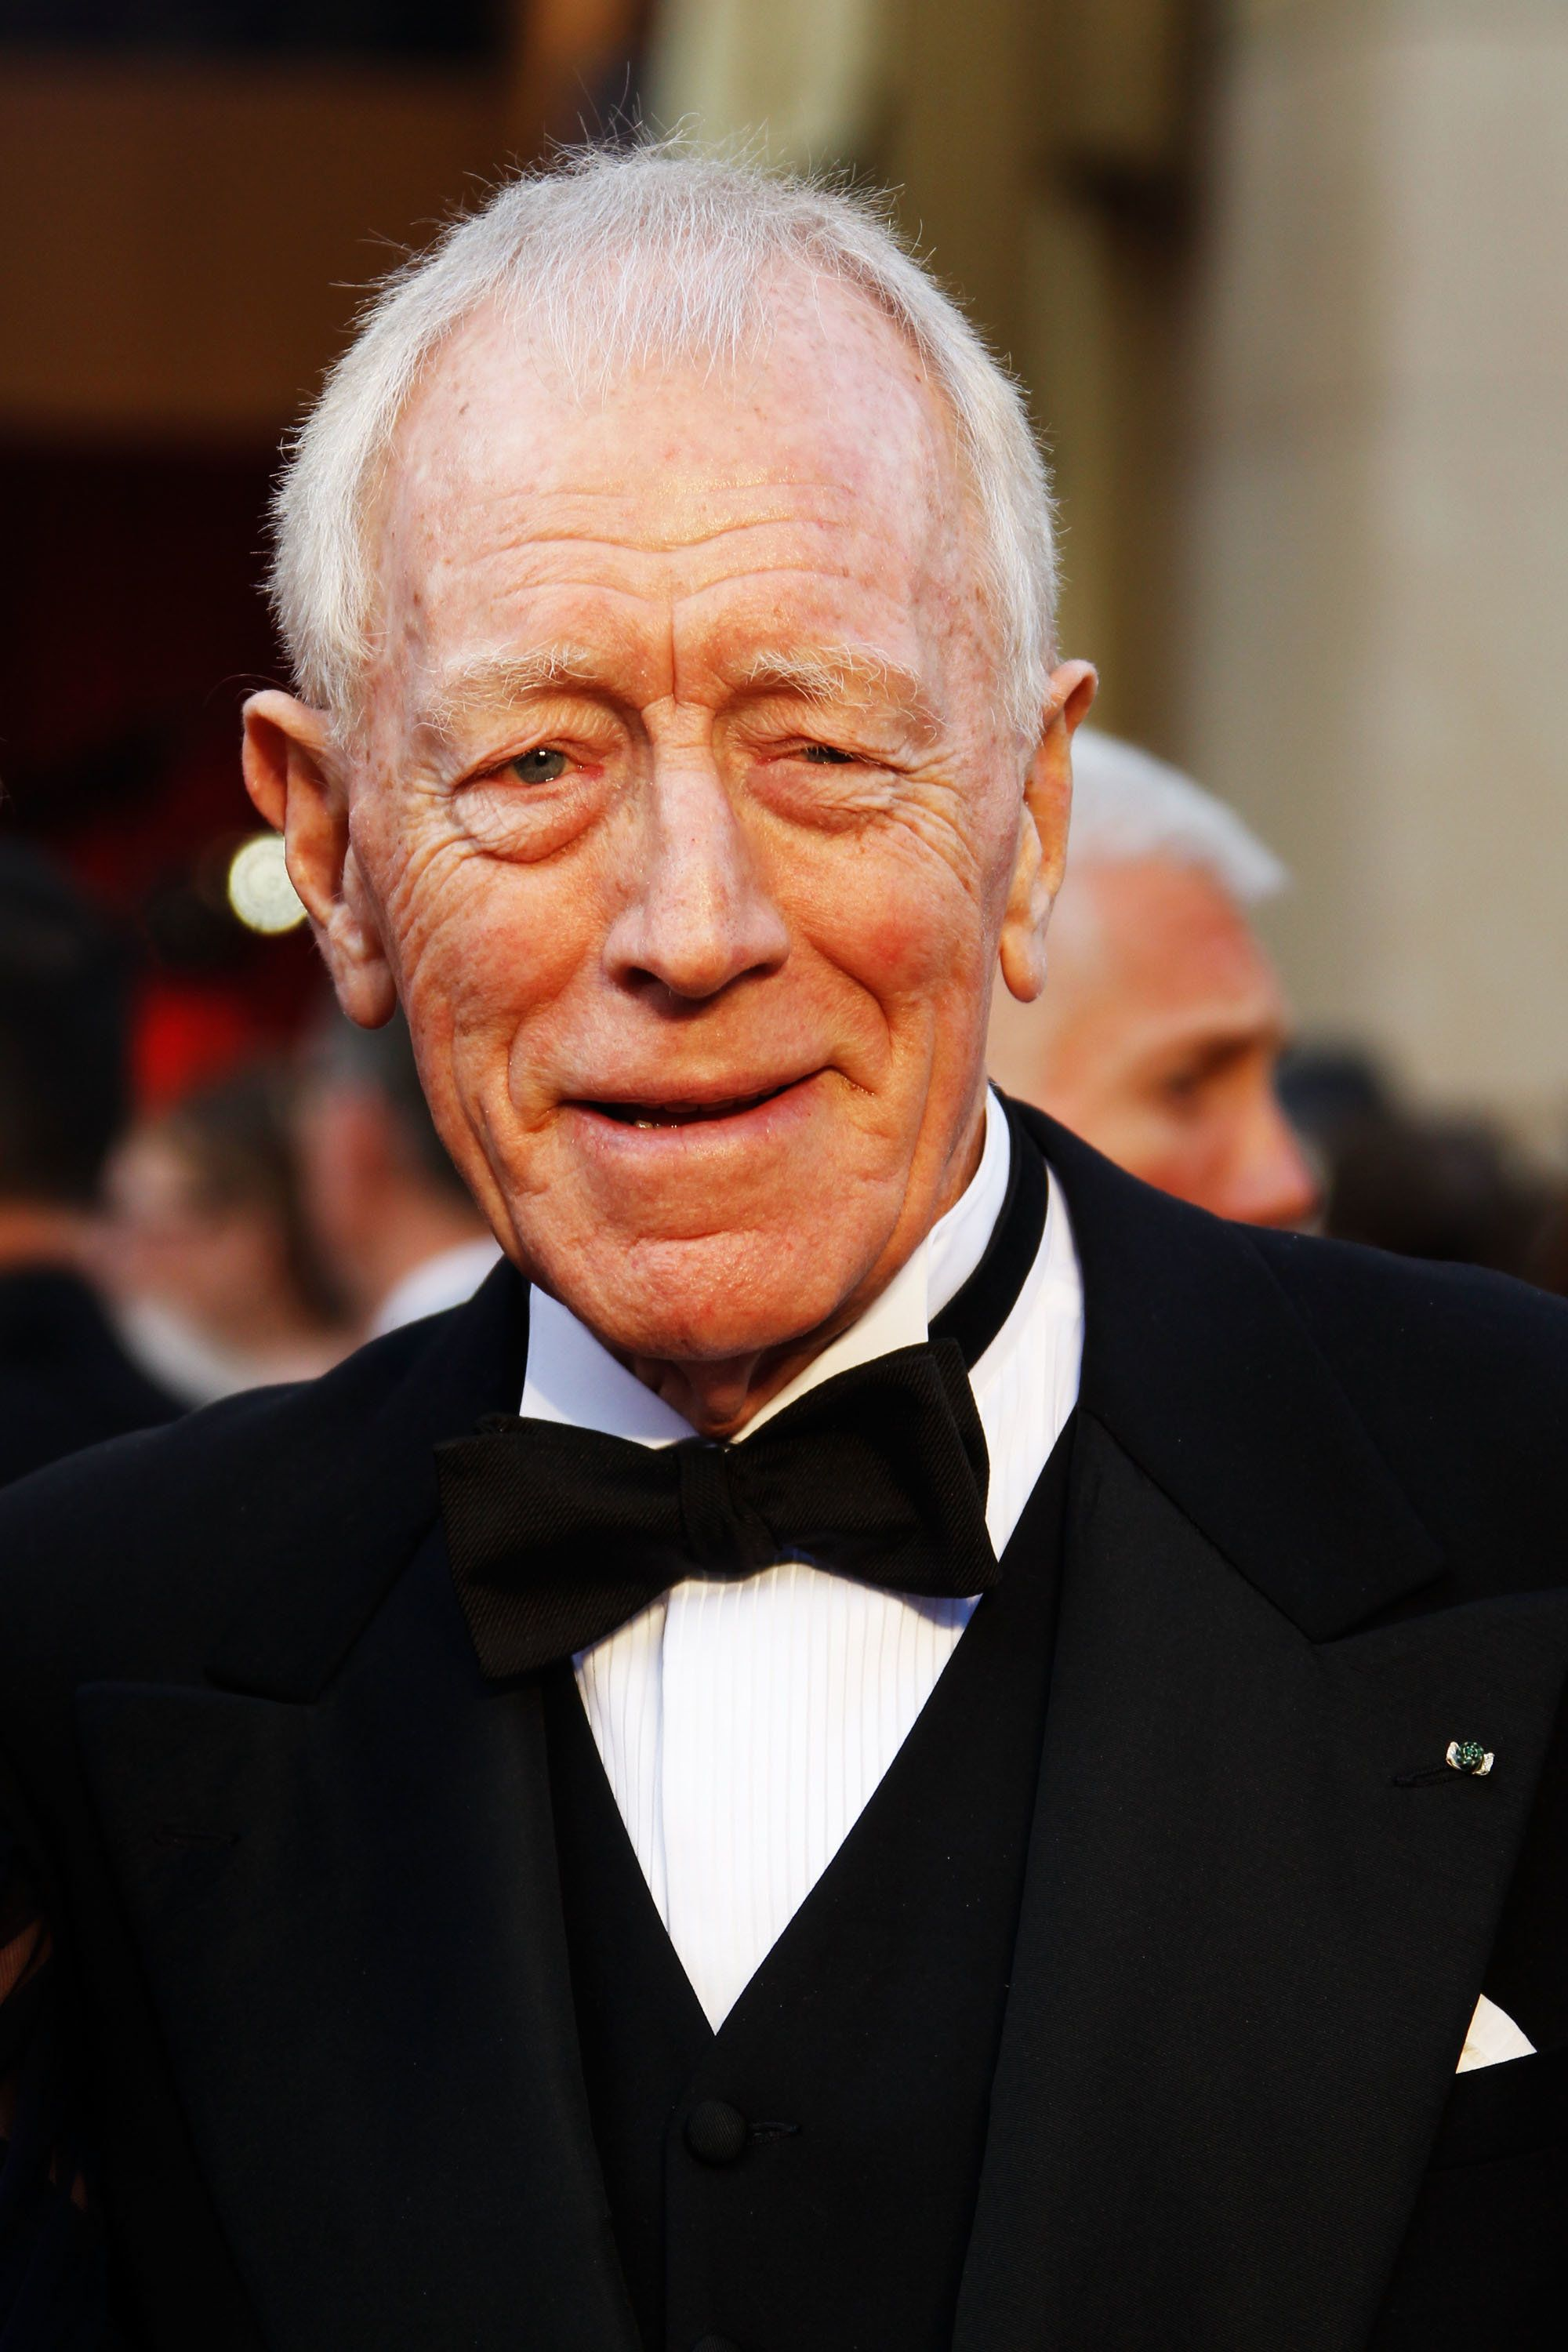 HOLLYWOOD, CA - FEBRUARY 26:  Actor Max von Sydow arrives at the 84th Annual Academy Awards held at the Hollywood & Highland Center on February 26, 2012 in Hollywood, California.  (Photo by Jeff Vespa/WireImage)